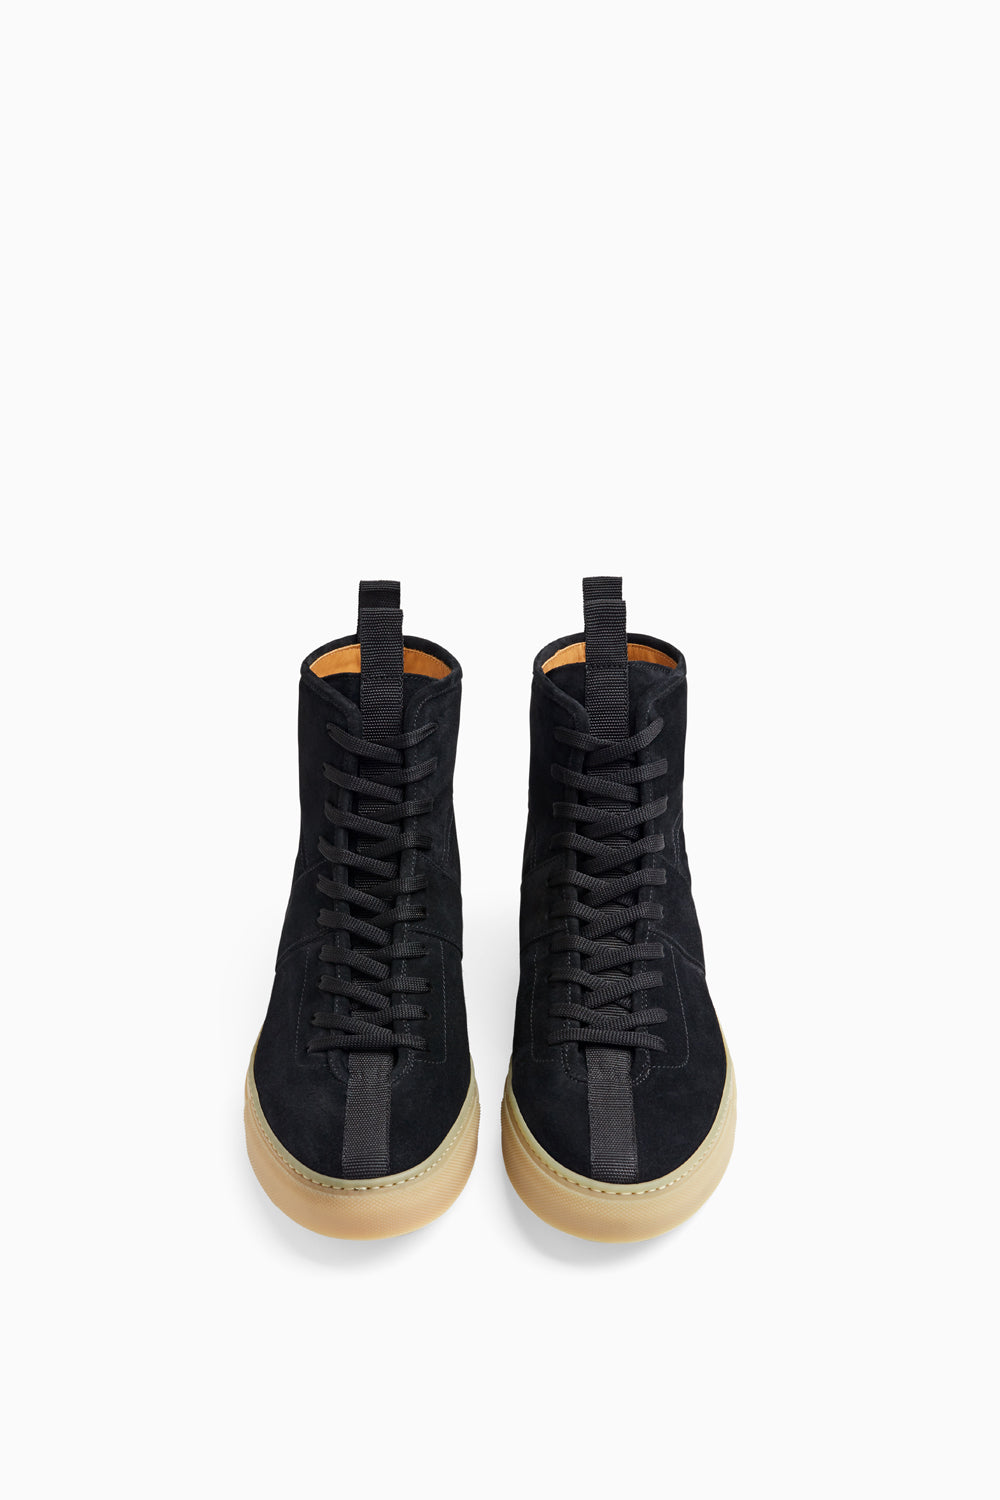 black/gum high top roamers by daniel patrick